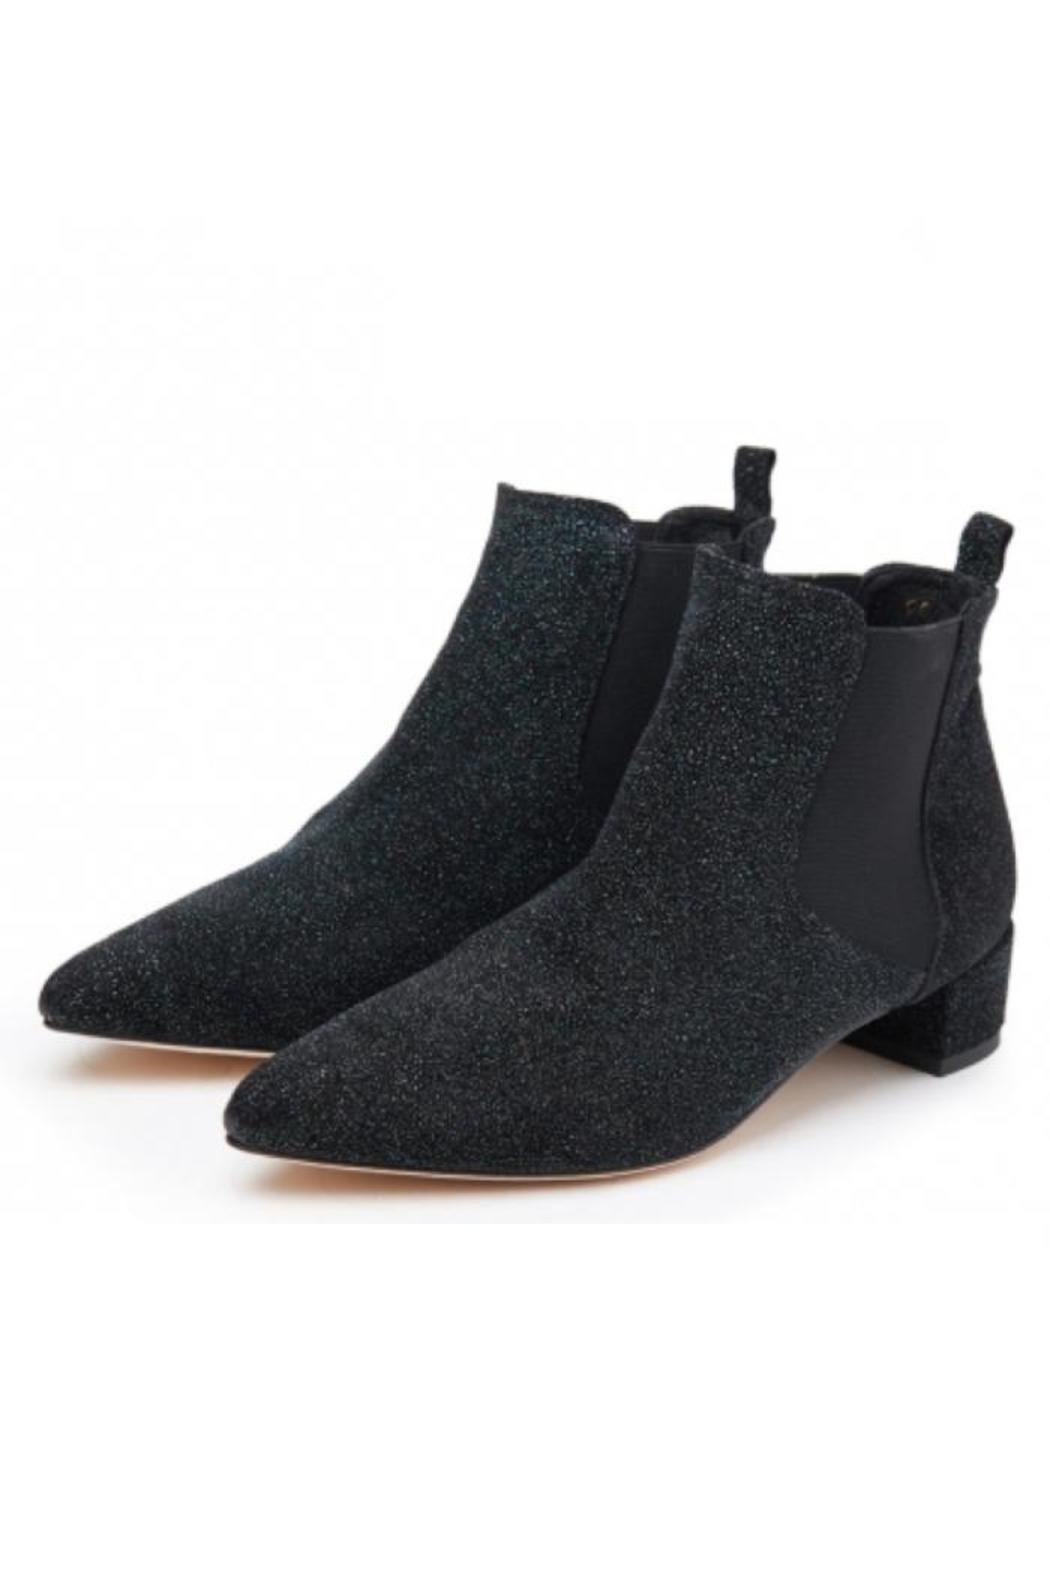 miista black sparkle ankle boots from san francisco by